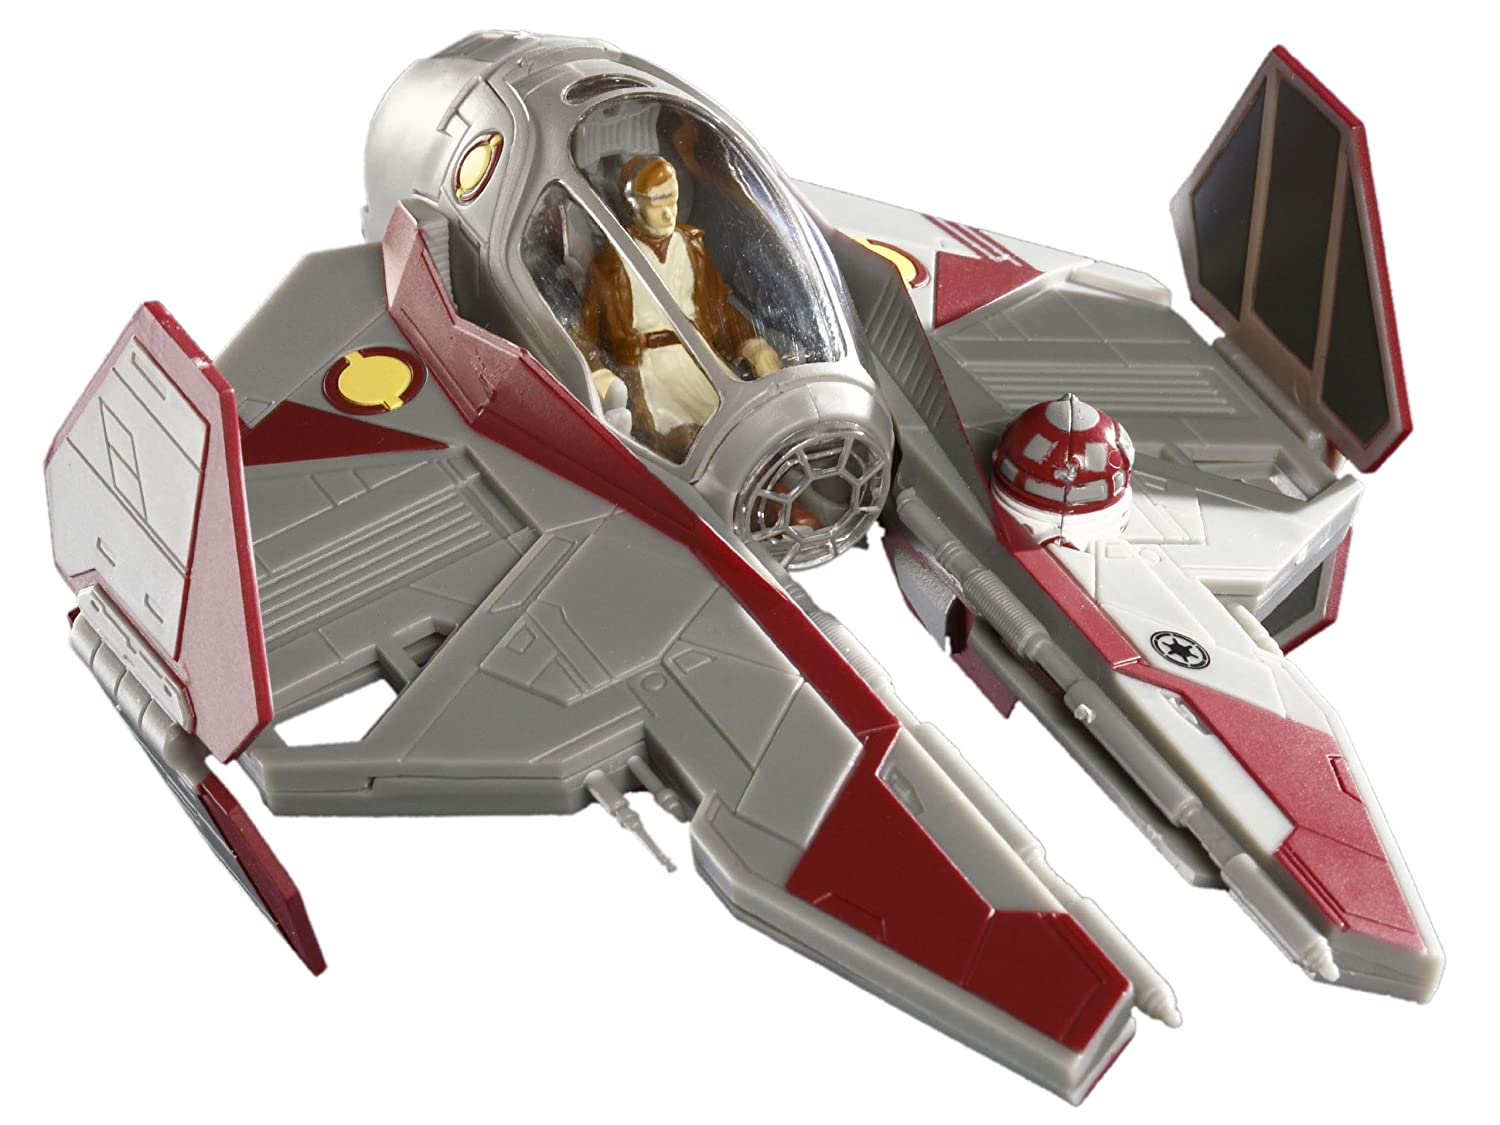 Revell - Maqueta EasyKit Pocket Star Wars ObiWans Jedi Starfighter, Escala 1:58 (06721)